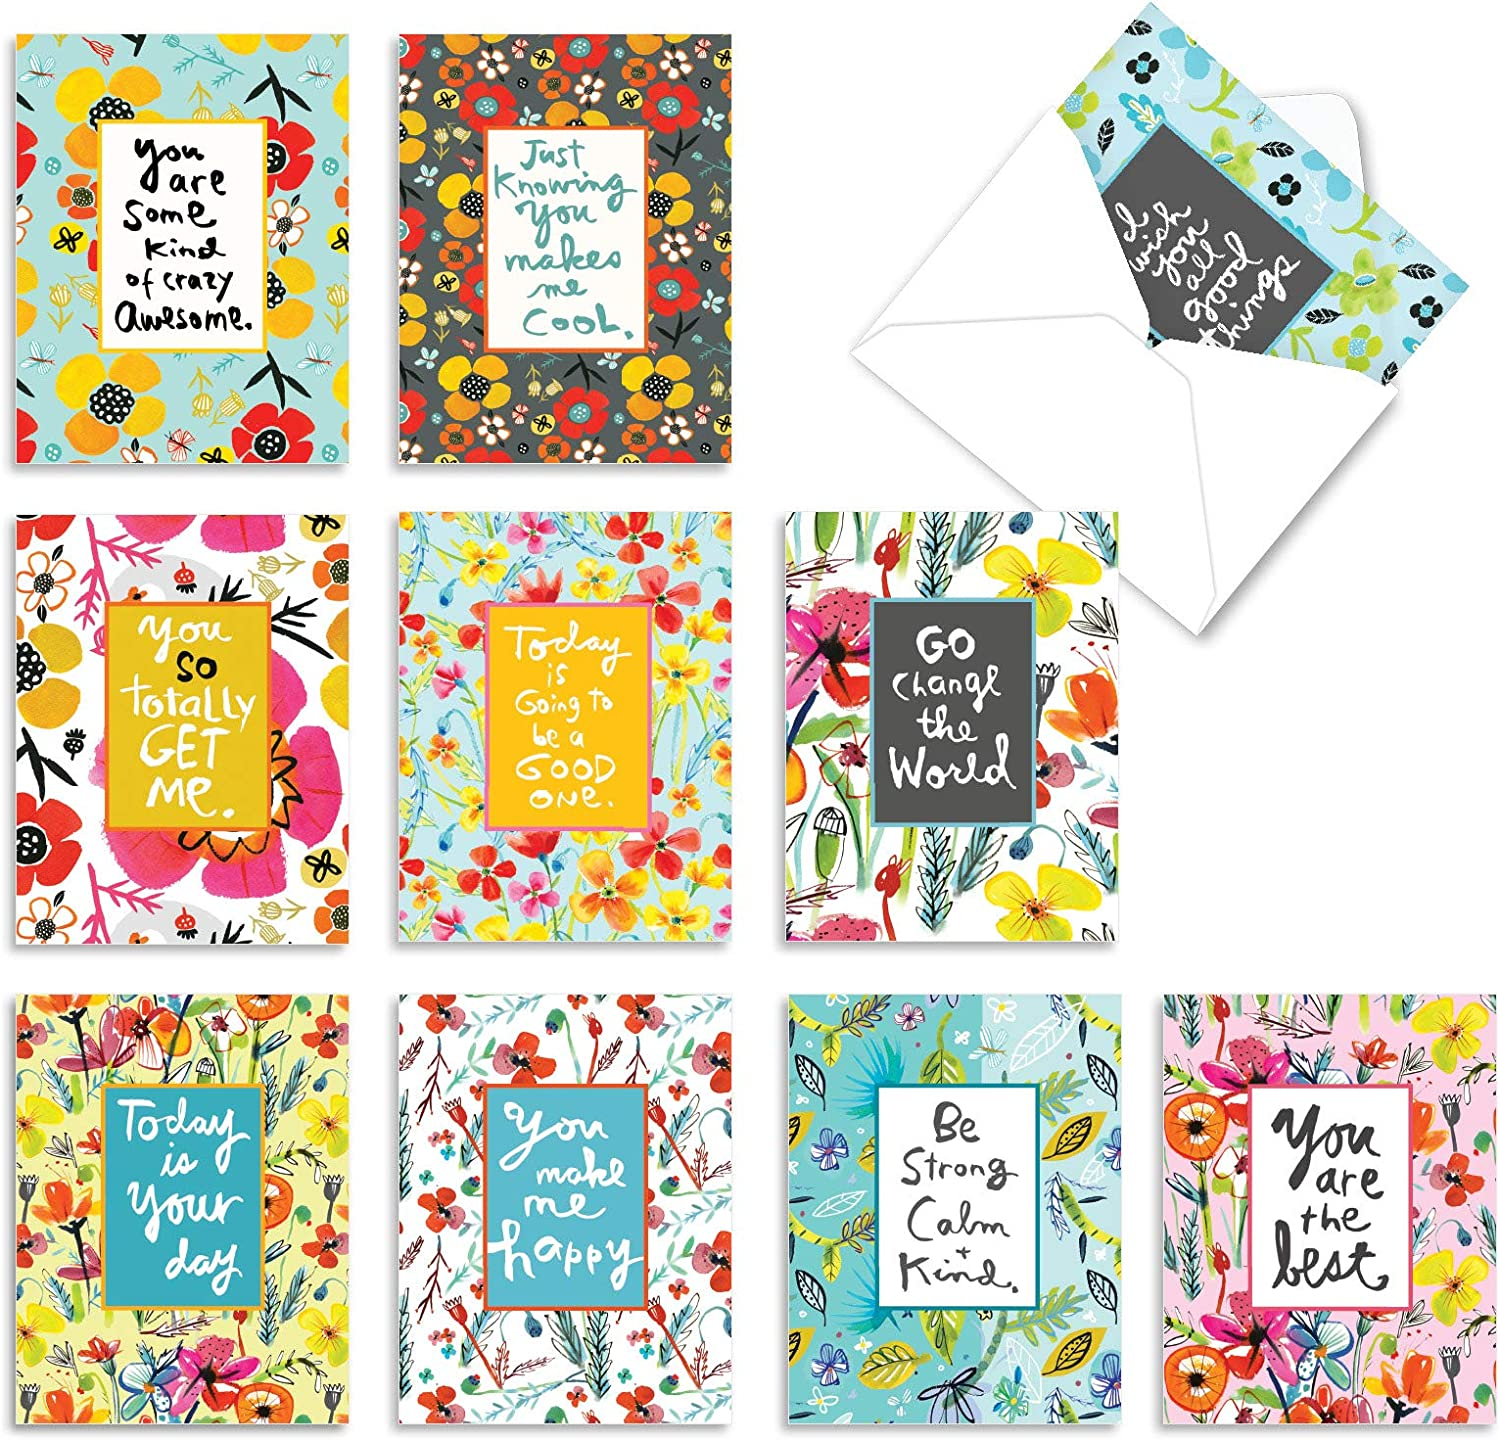 10 PACK OF BLANK NOTE CARDS WITH ENVELOPES 4 SAYINGS FRIENDS LOVE BEAUTIFUL LIFE